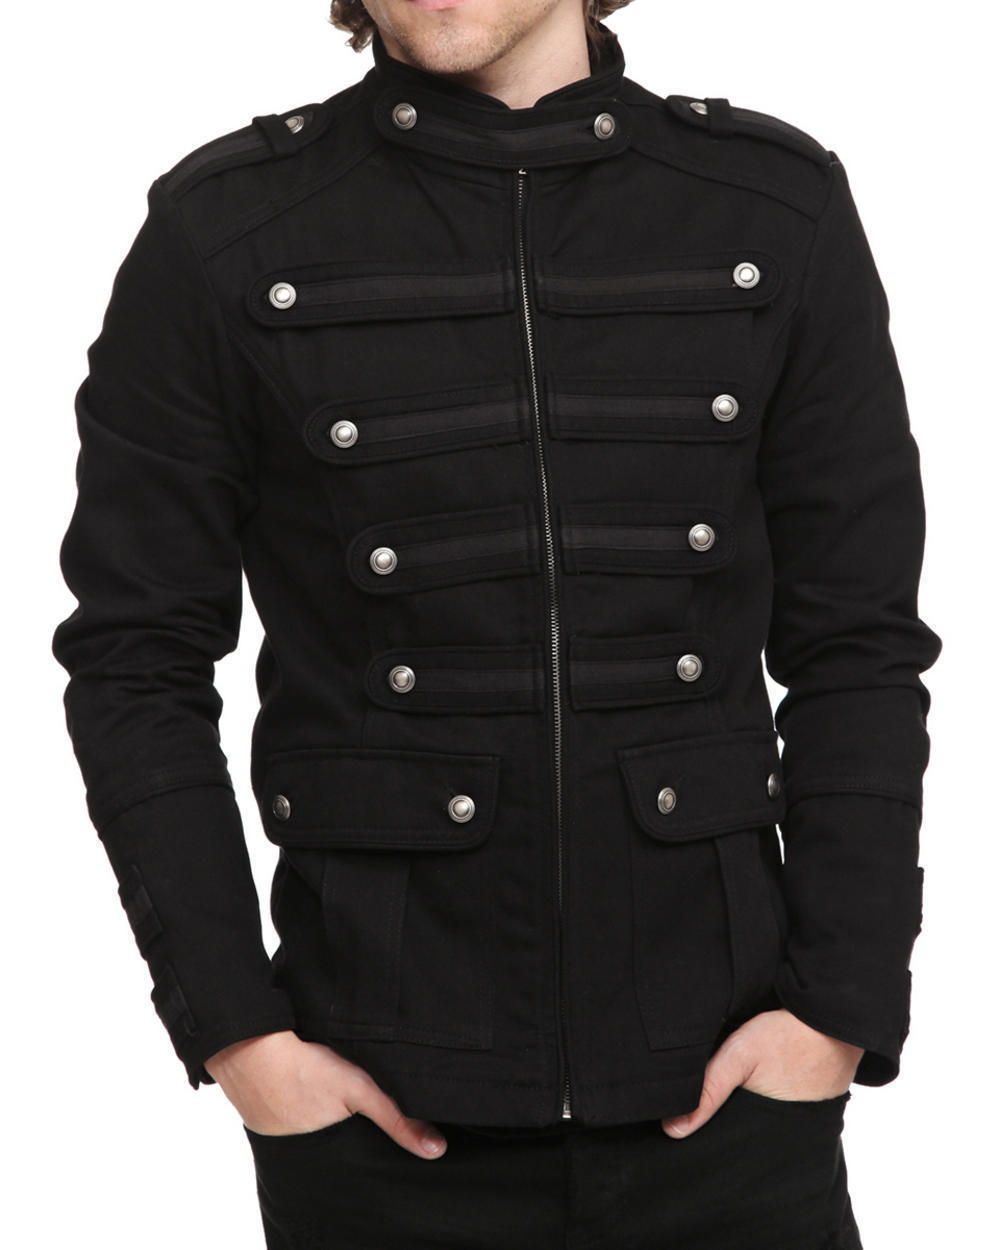 Mens Gothic Steampunk Jacket Black Gothic Military Band